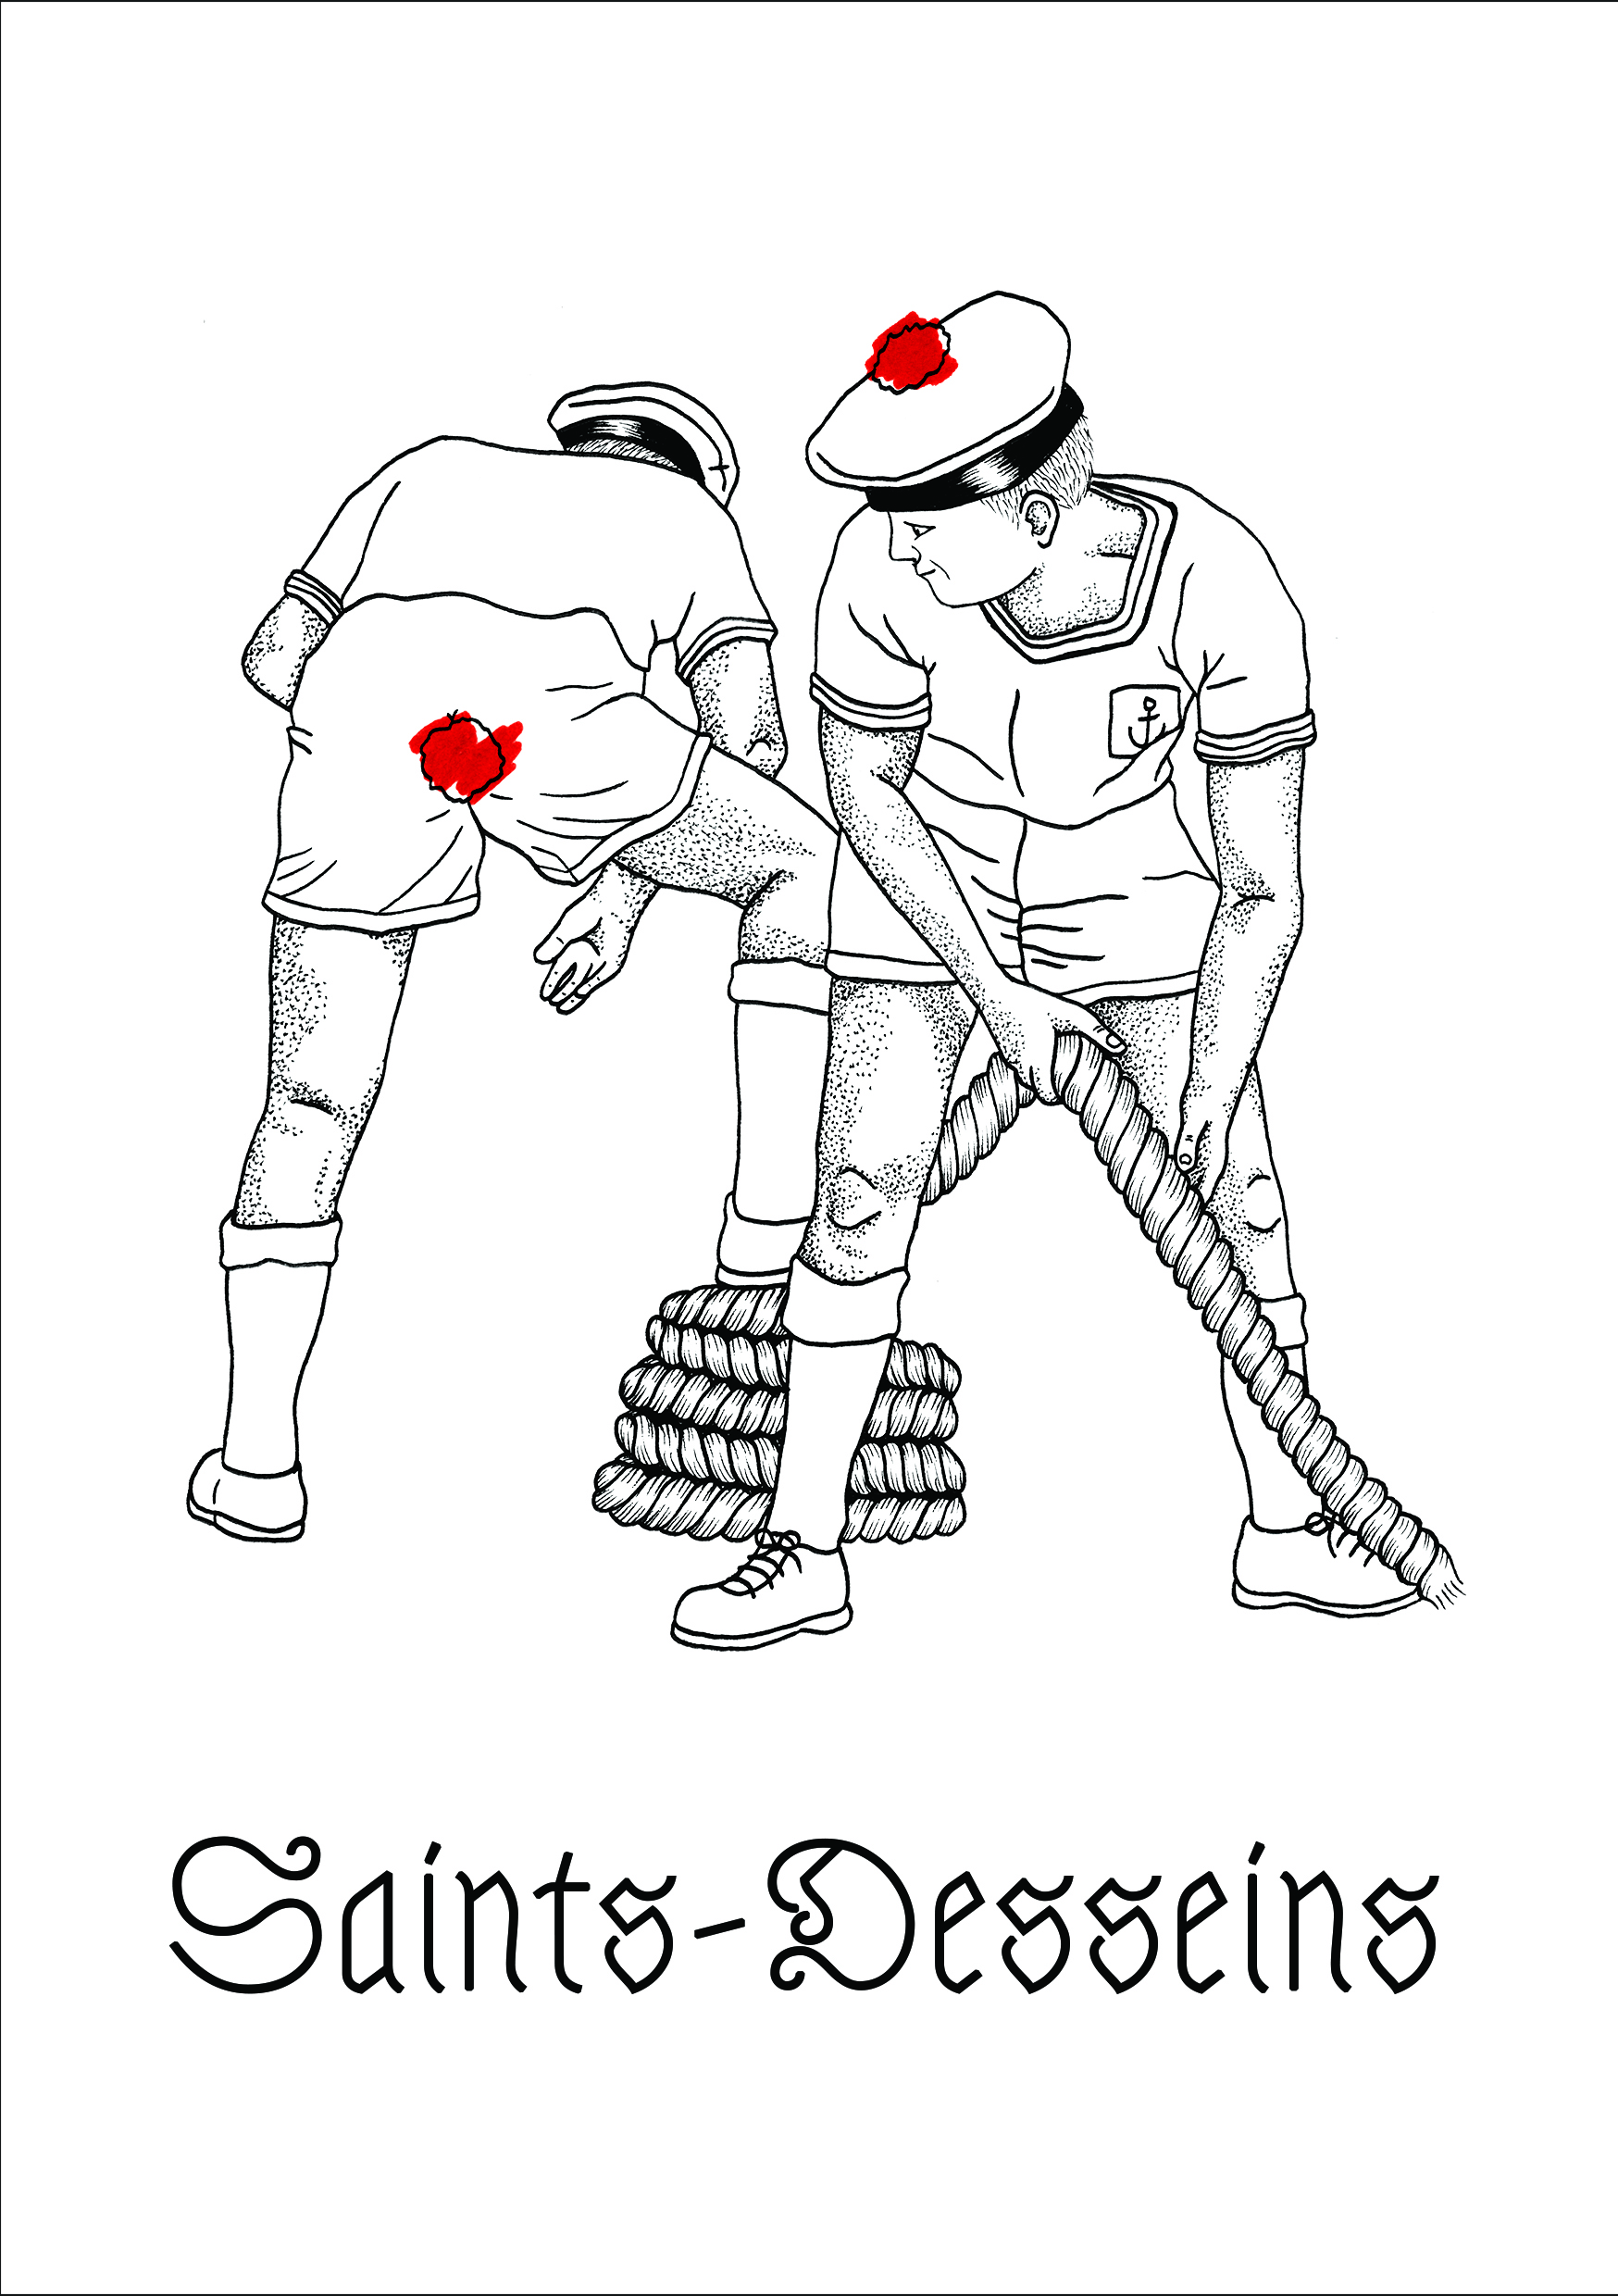 recto_fly-saints-desseins